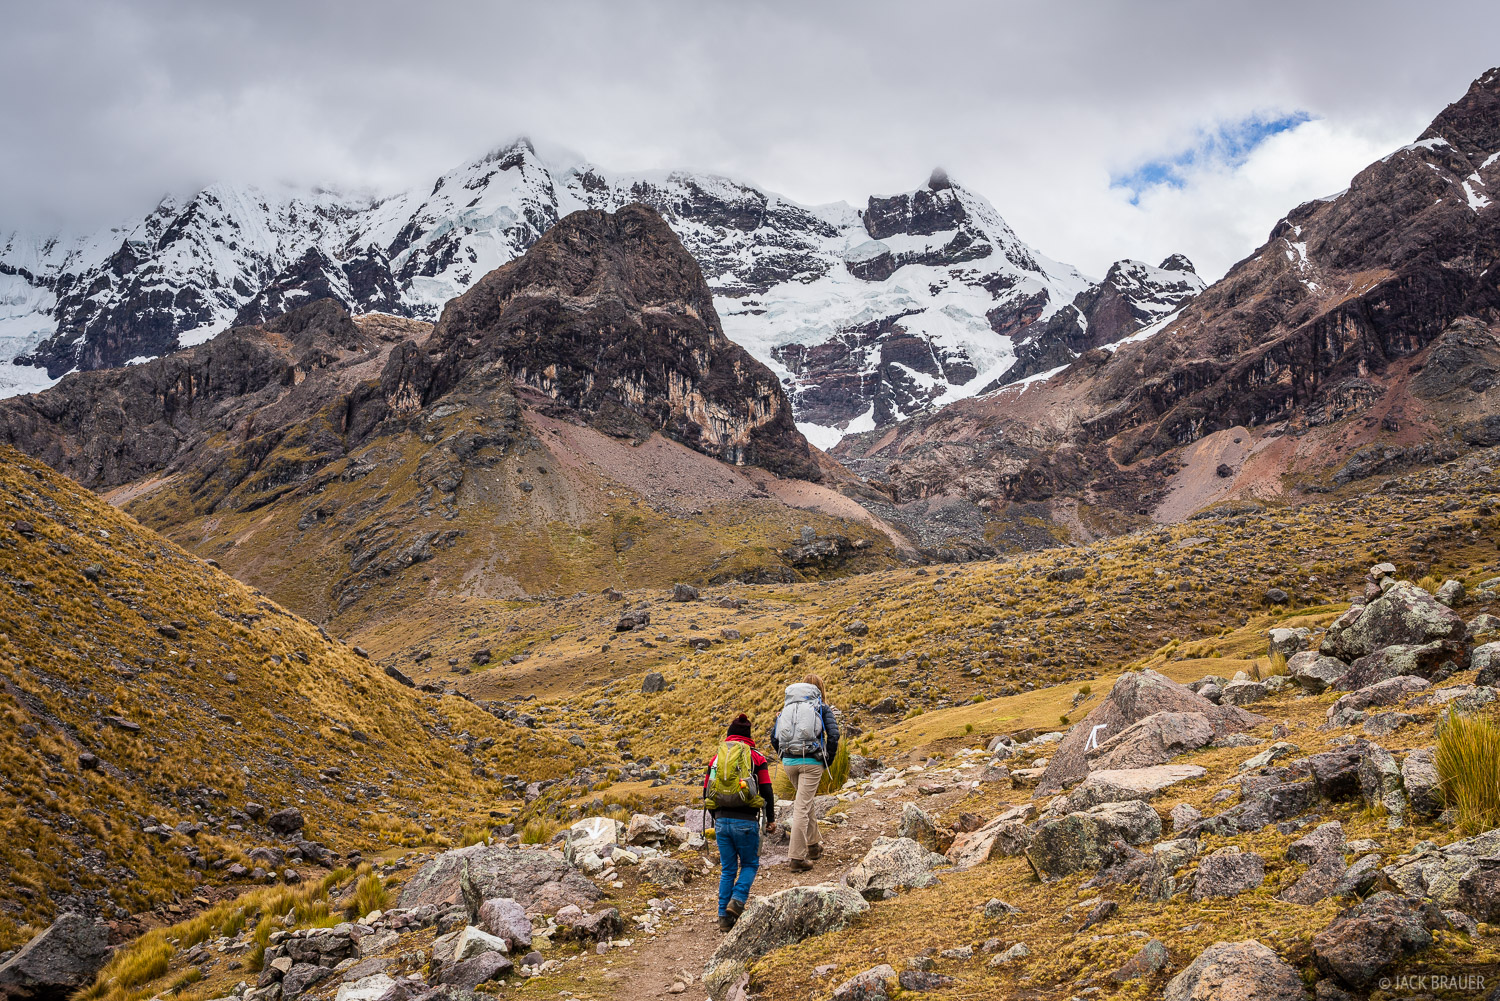 Ausangate, Cordillera Vilcanota, Peru, South America, hiking, photo